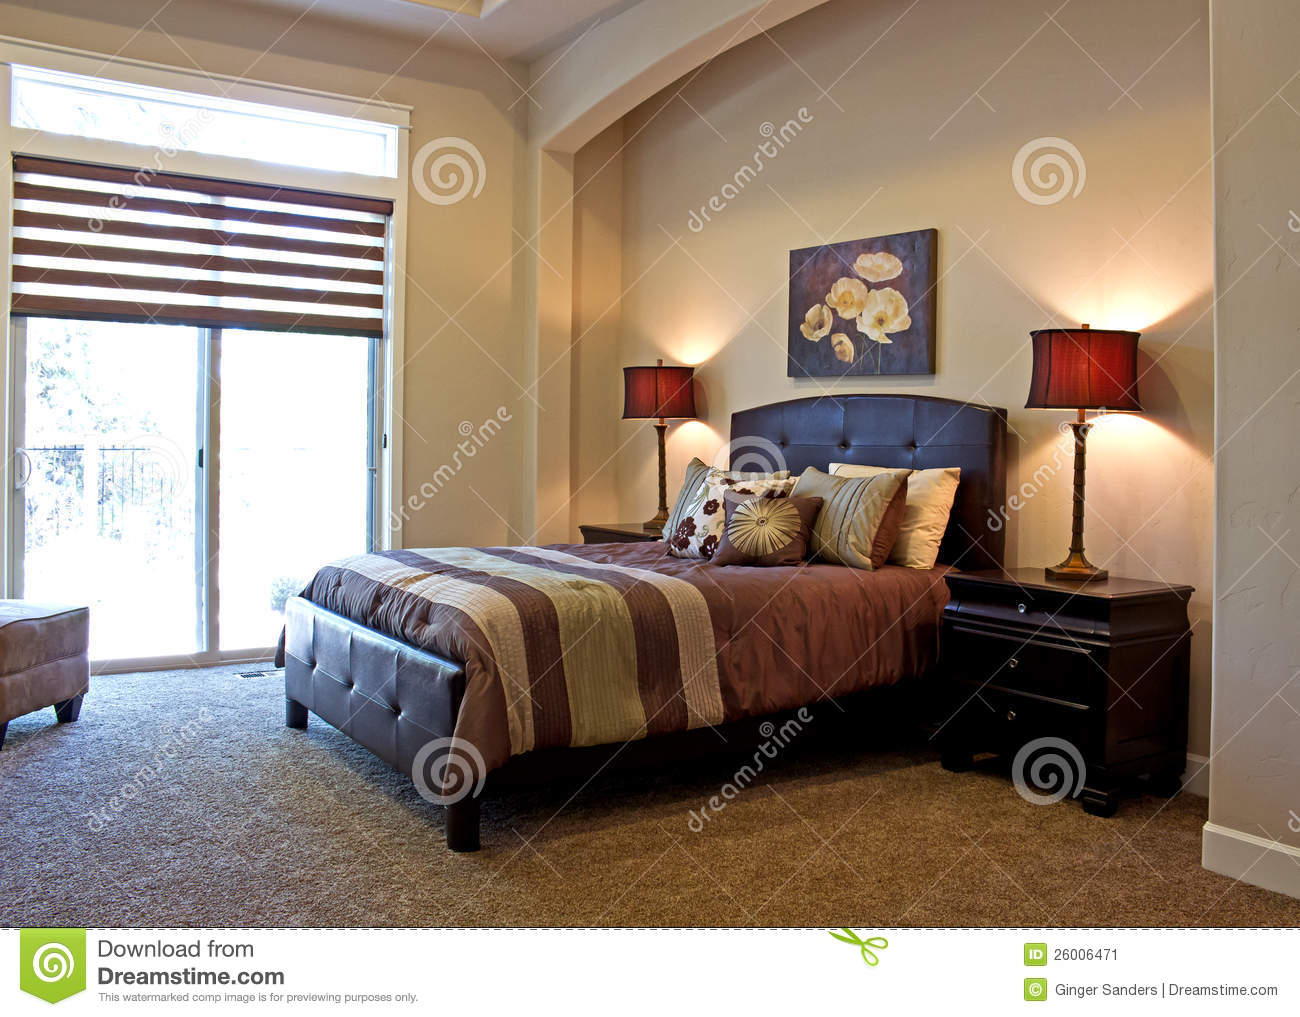 Neutral color luxury bedroom in brown and rust colors photographed in